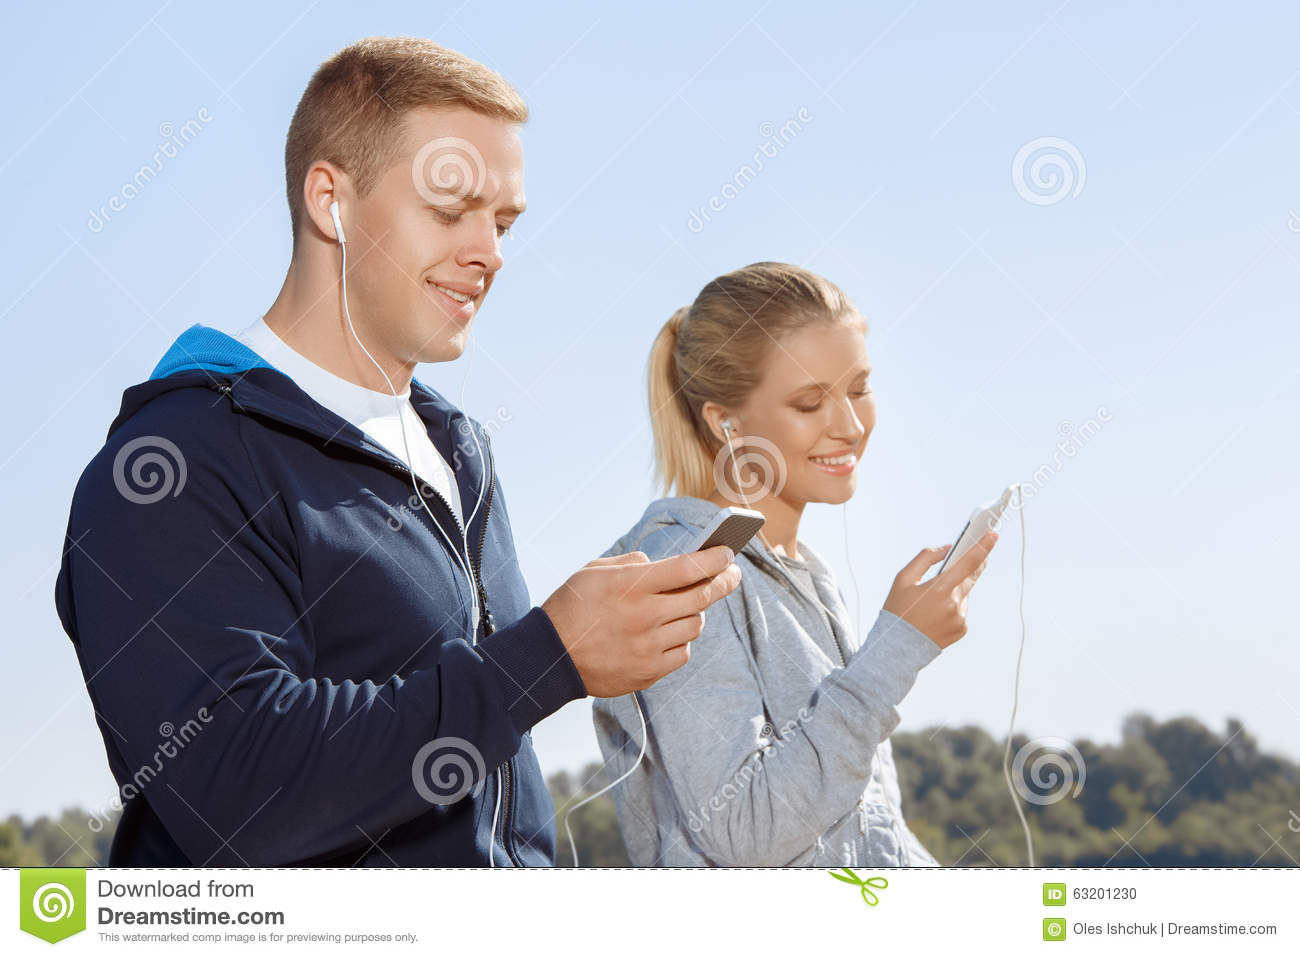 Friends Listening To Music On Their Headphones Stock Photo ...